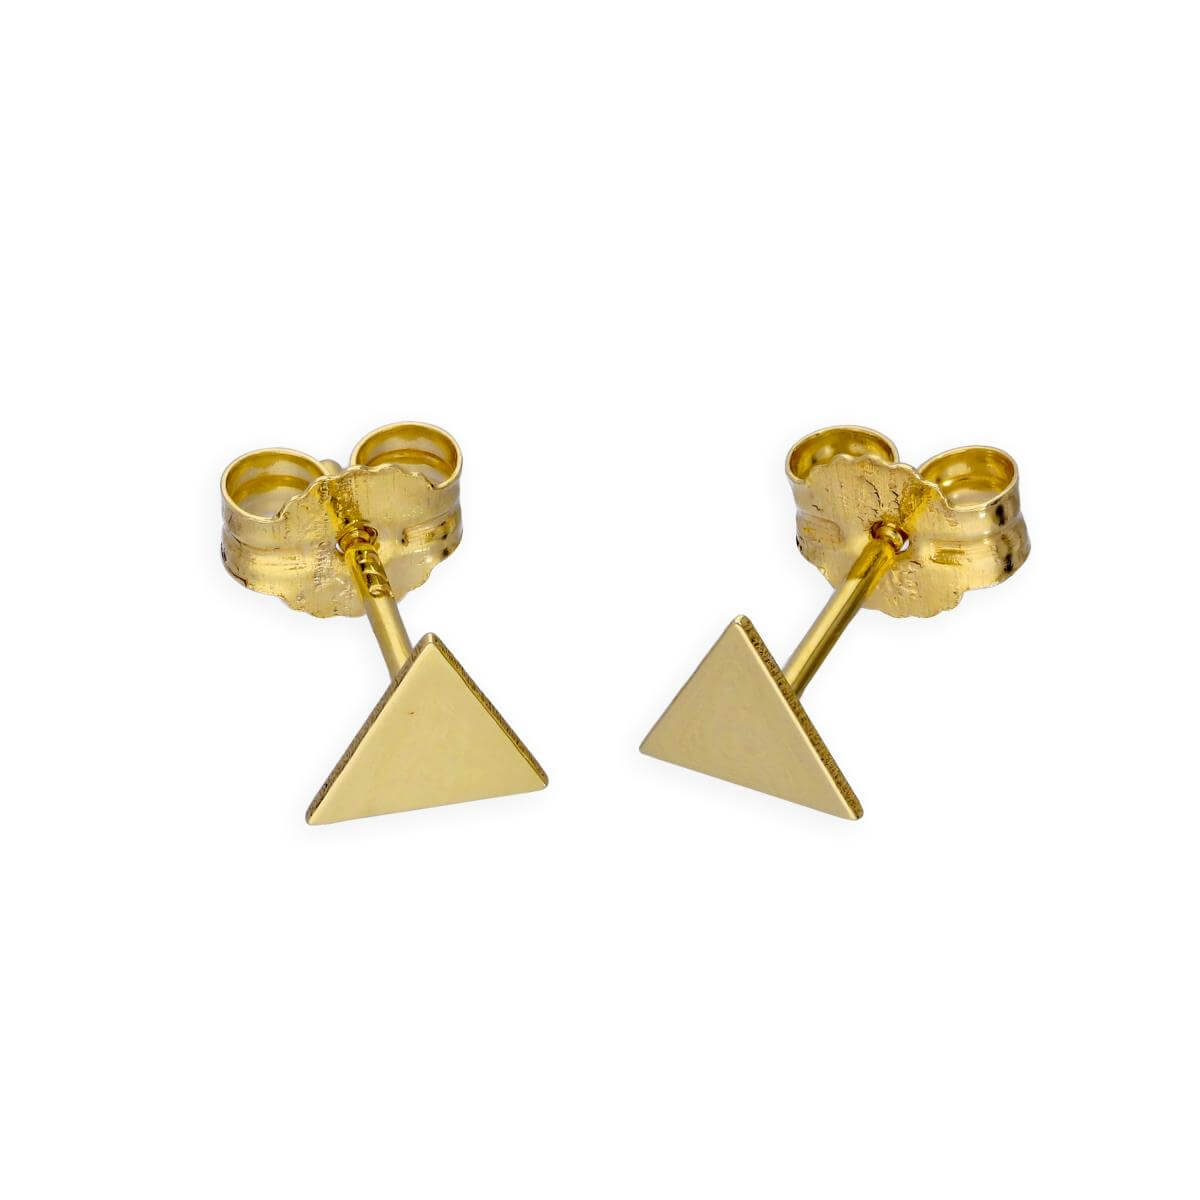 9ct Gold Flat Triangle Stud Earrings